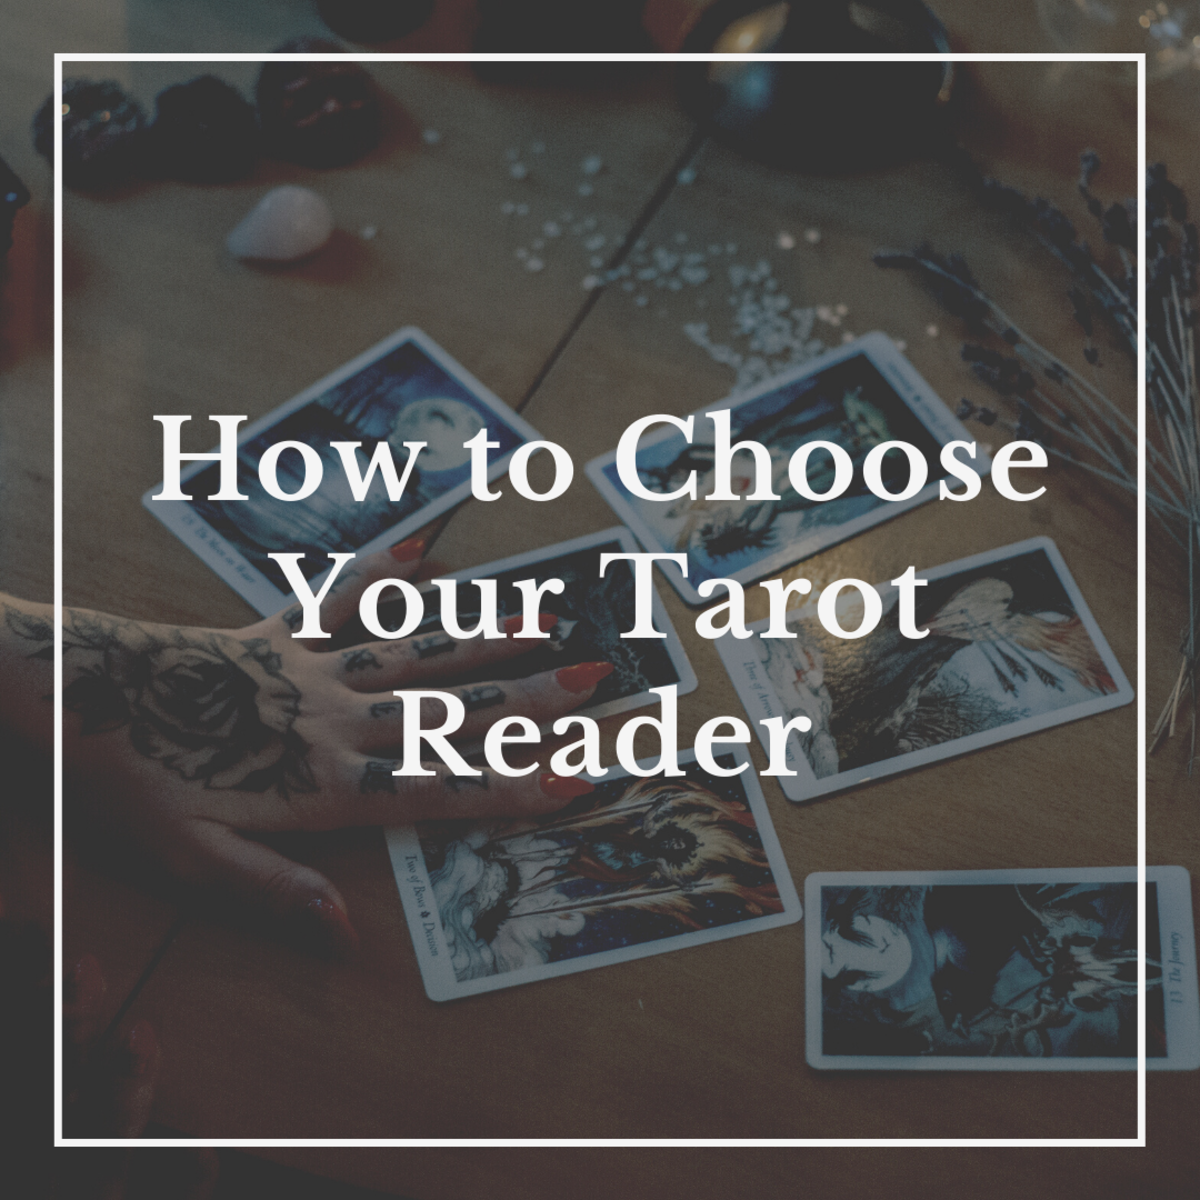 How to Choose Your Tarot Reader